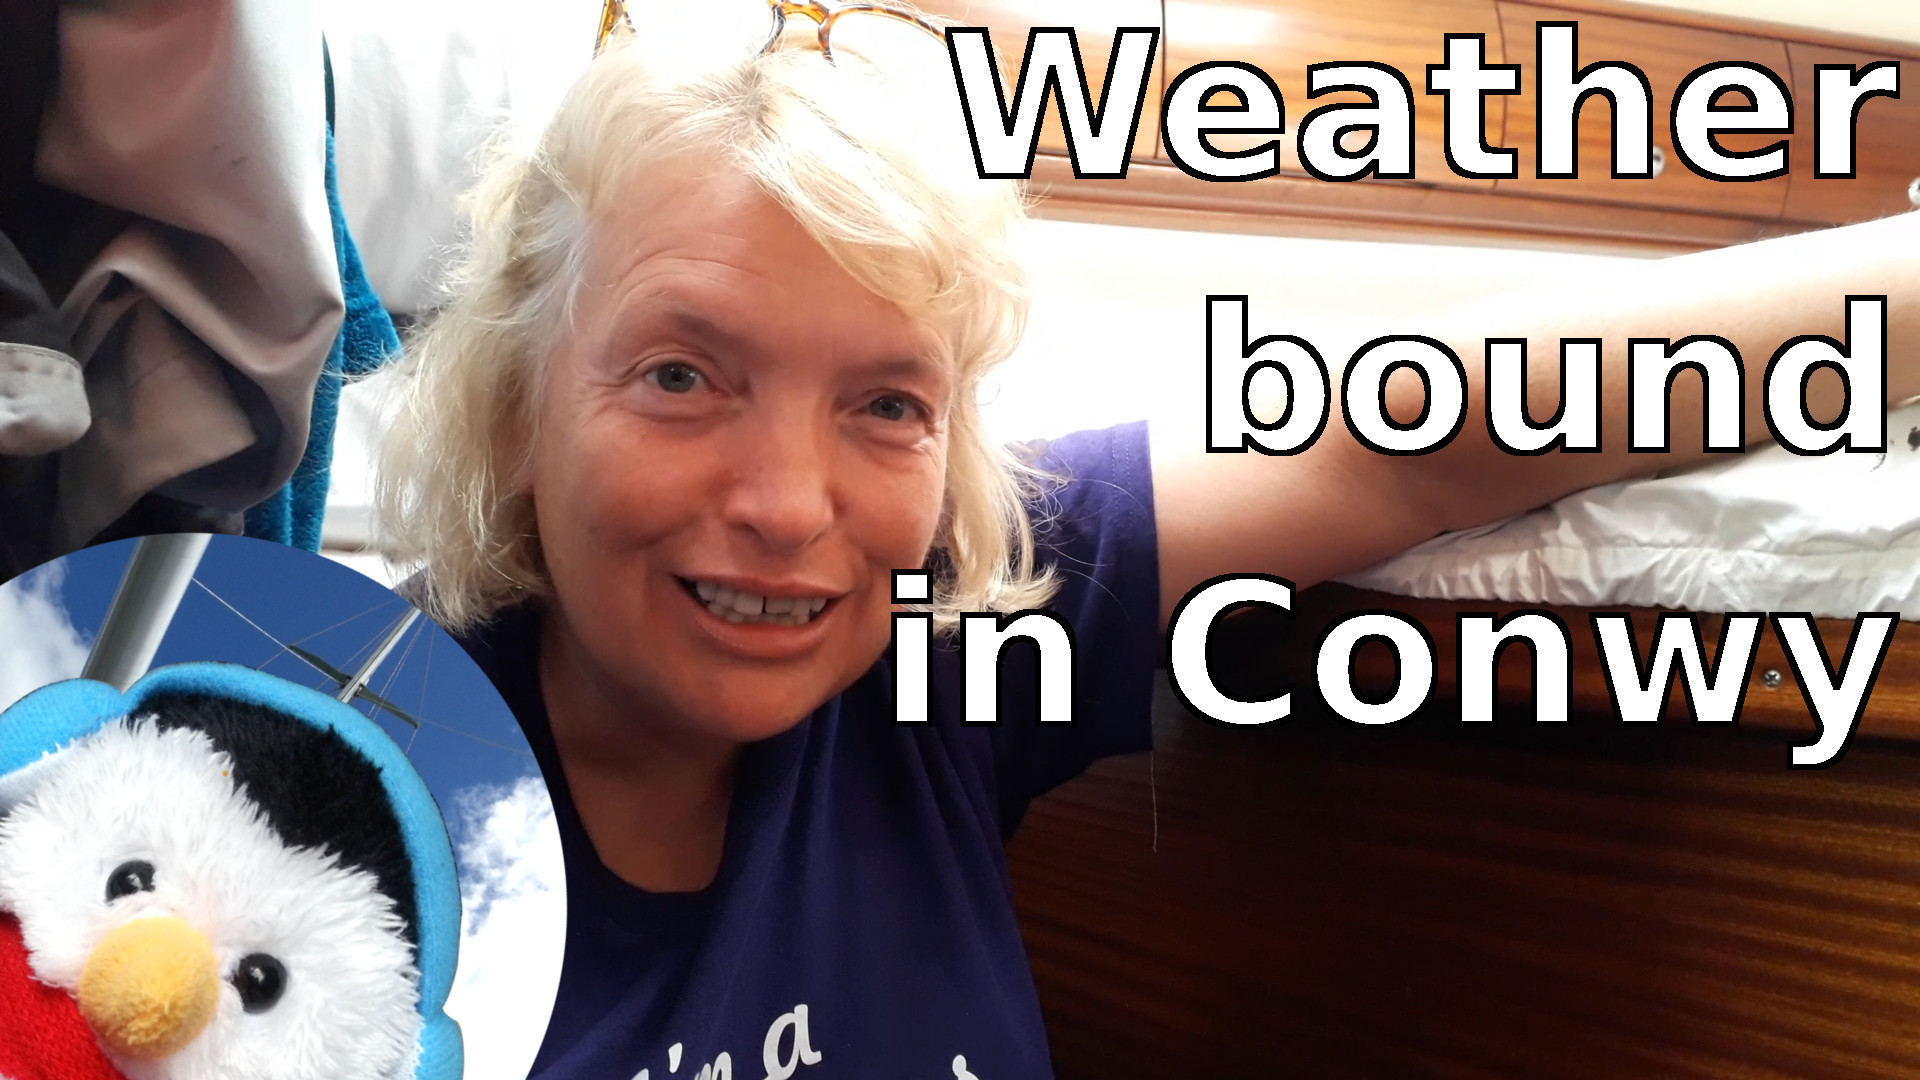 Watch our 'Weather bound in Conwy' video and add comments etc.